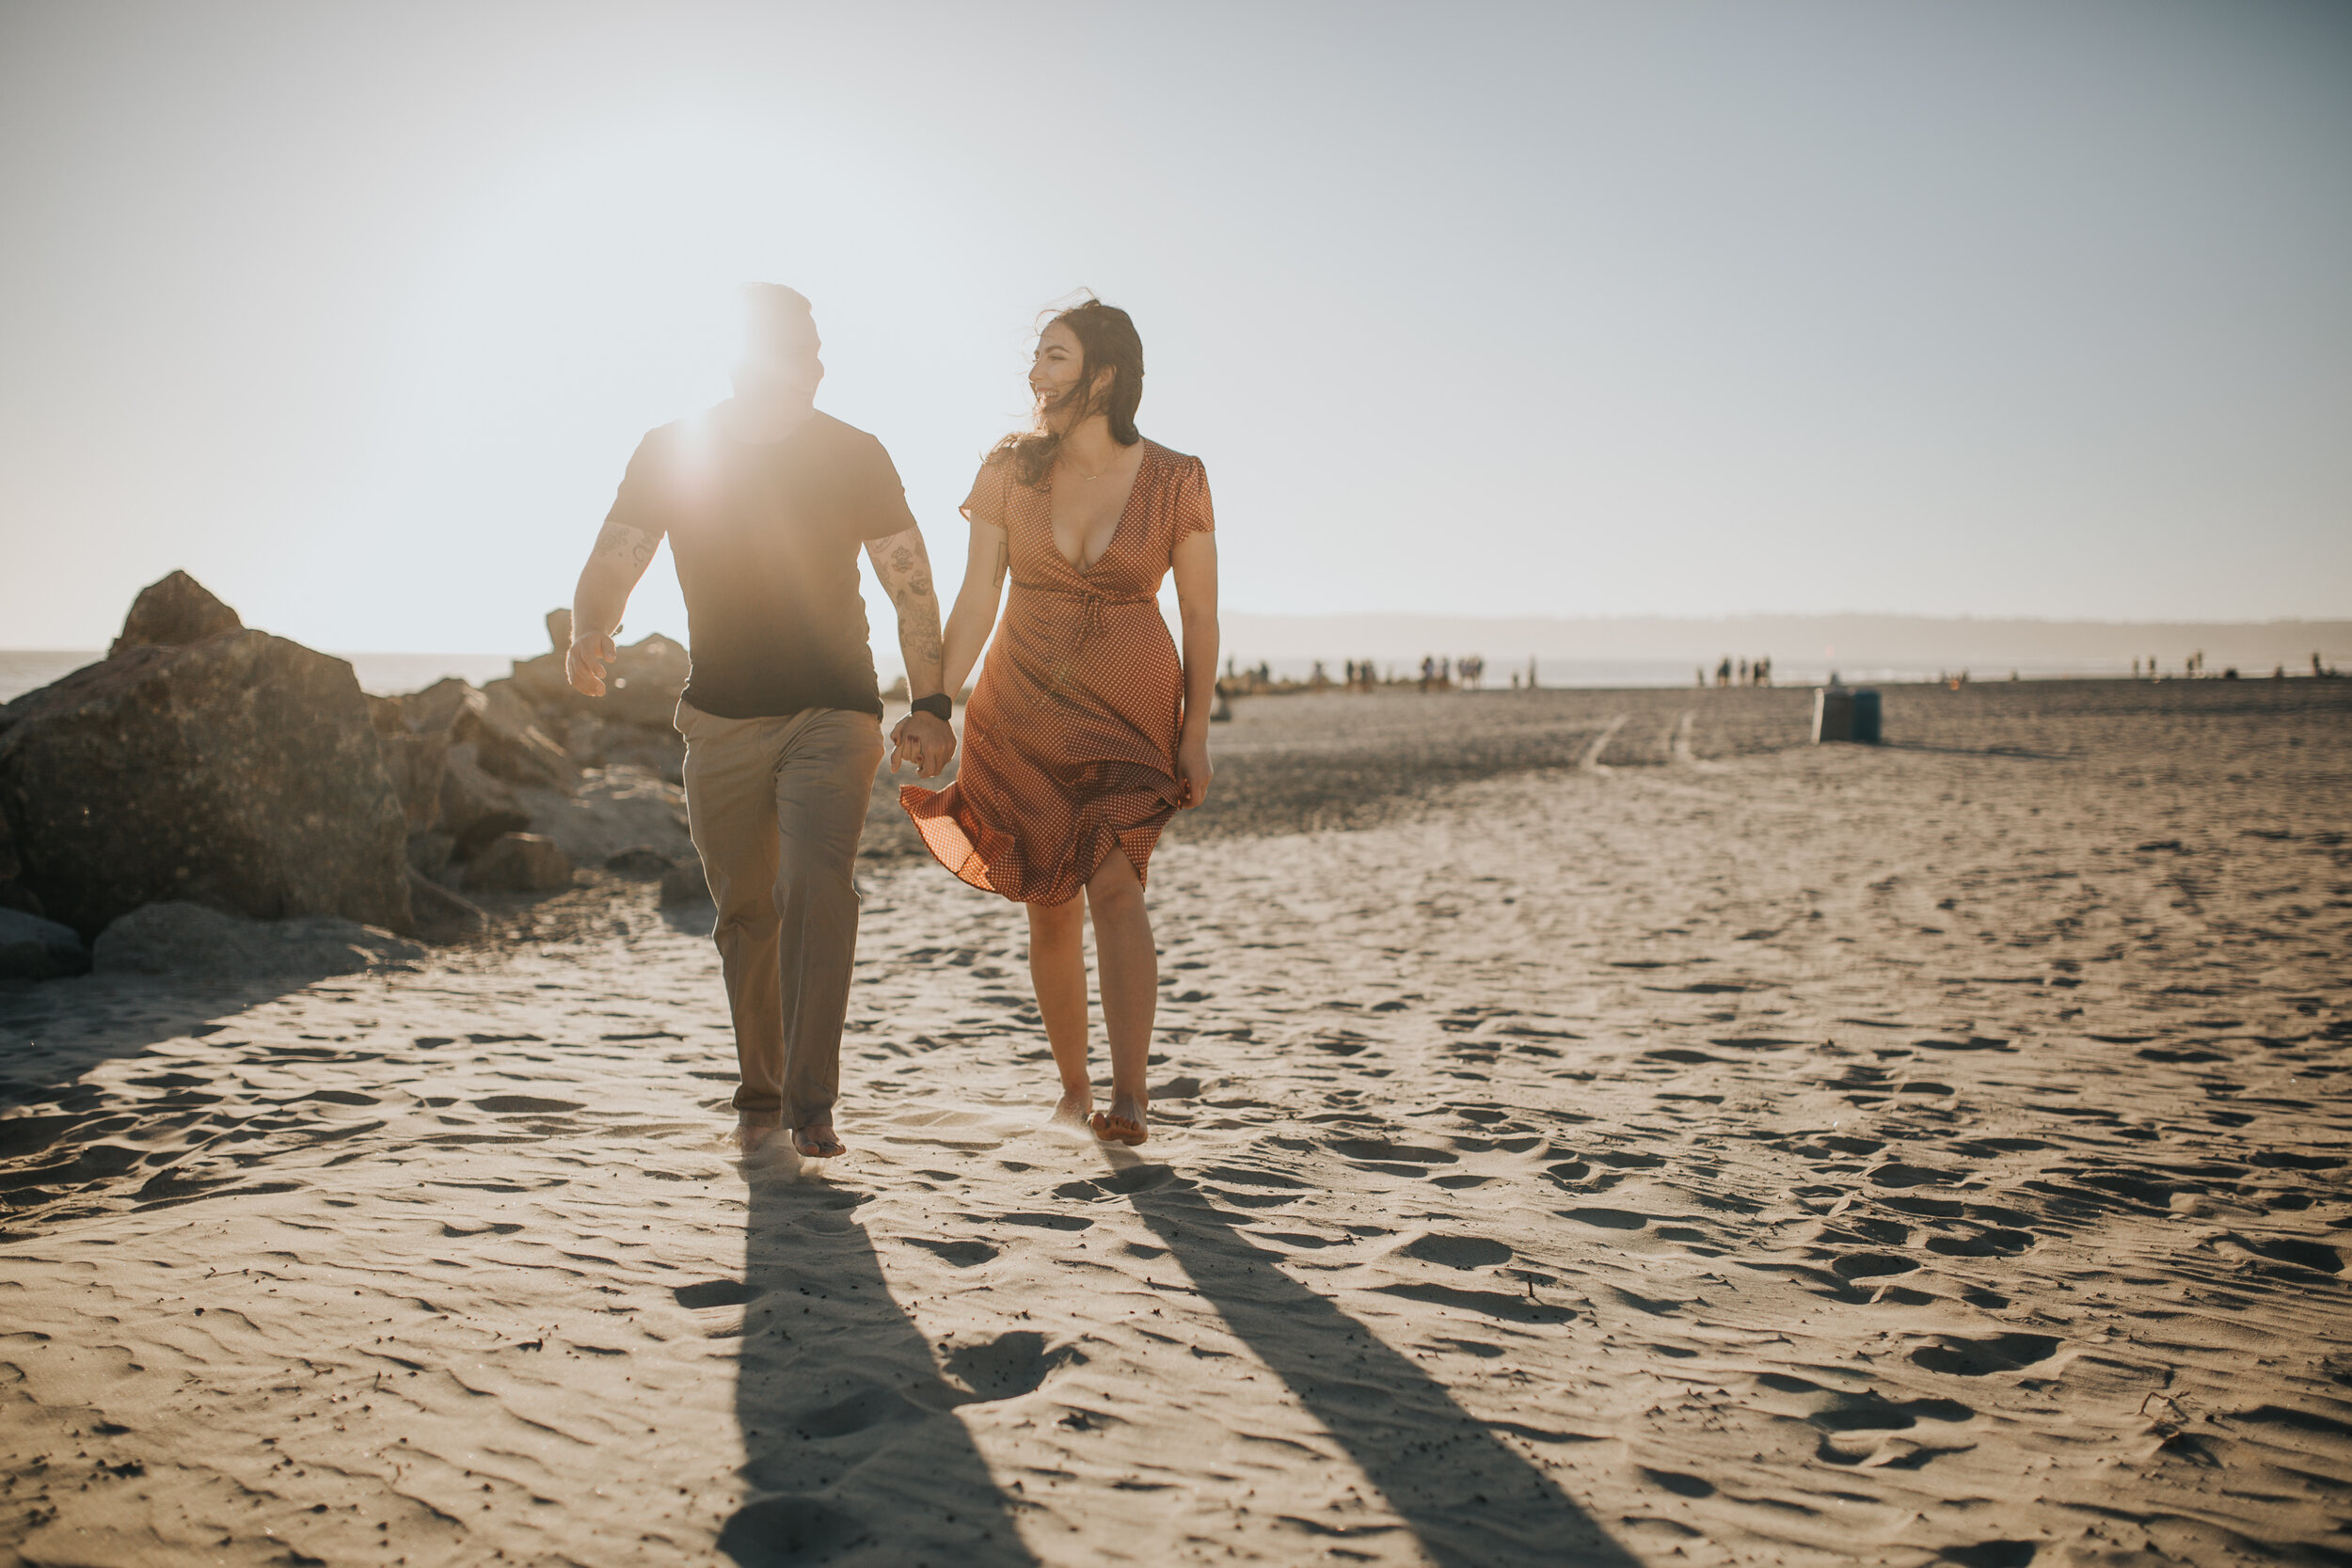 coronado-beach-engagement-session-valerielendvayphoto-005.jpg